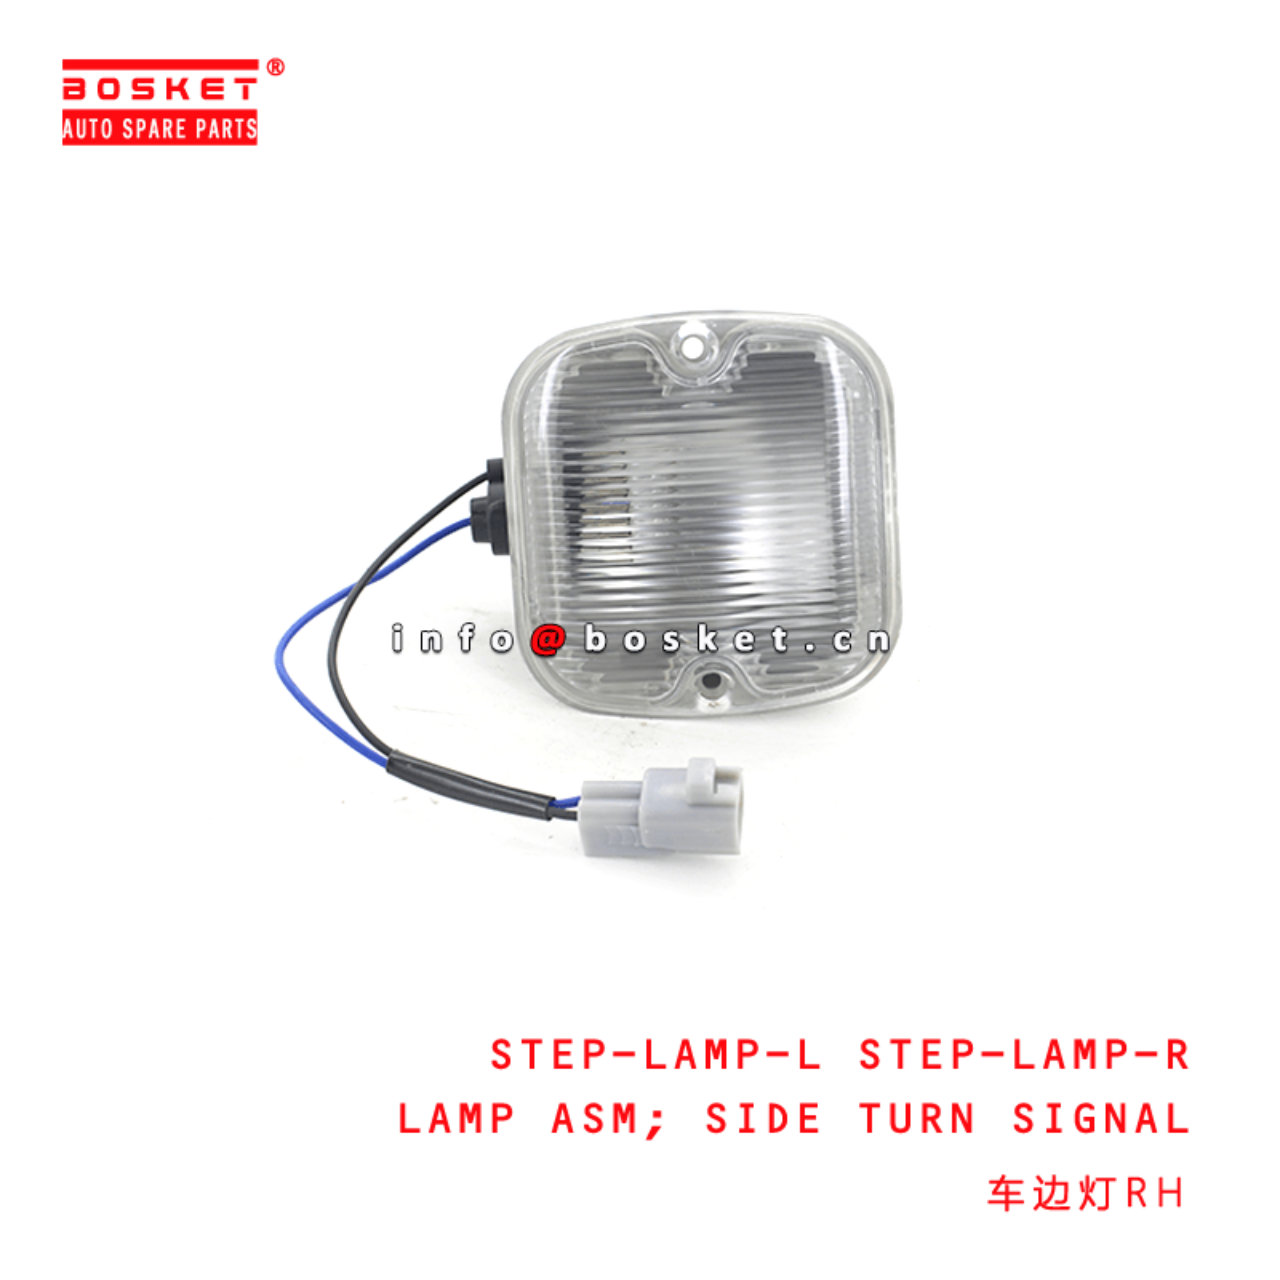 STEP-LAMP-L STEP-LAMP-R STEPLAMPL STEPLAMPR Side Turn Signal Lamp Assembly Suitable for ISUZU